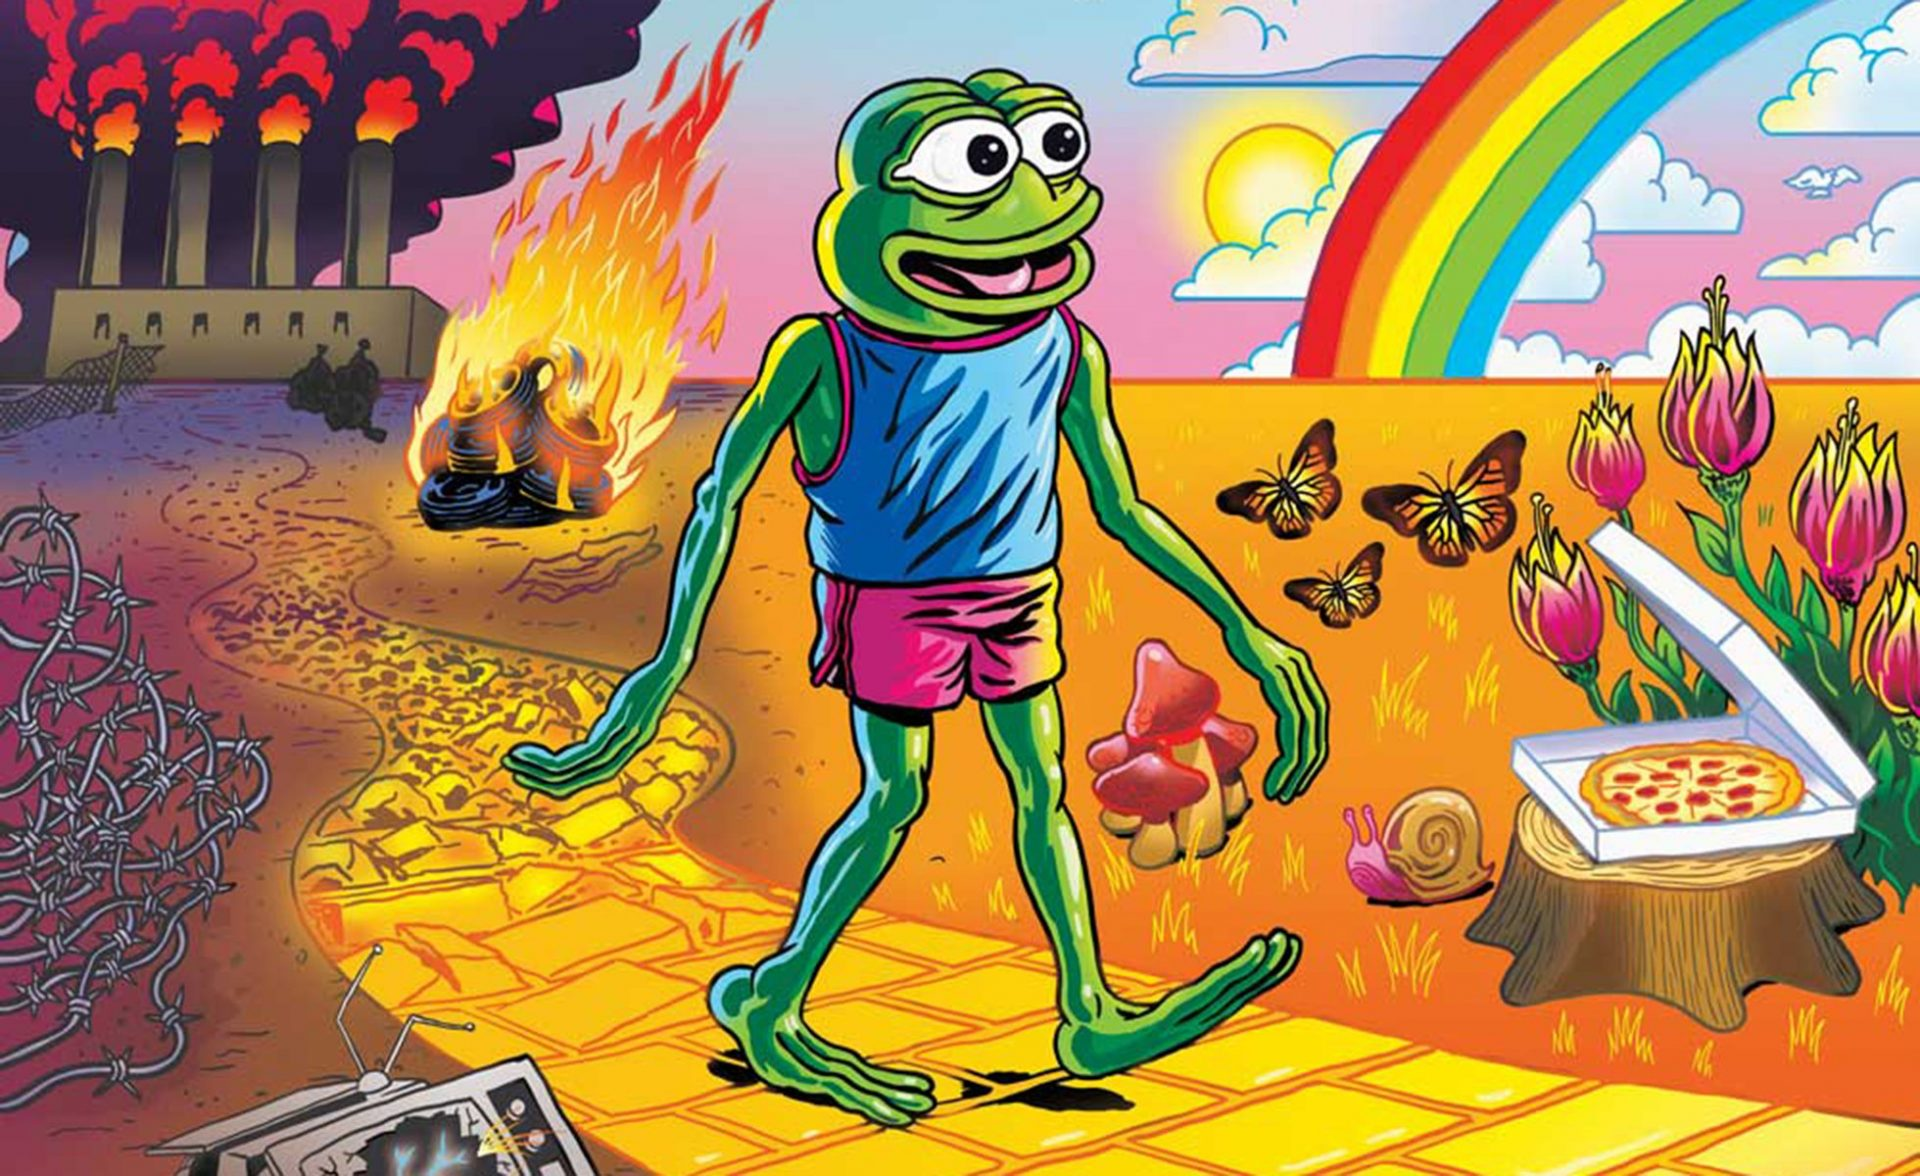 pepe the frog, twitch, emote,